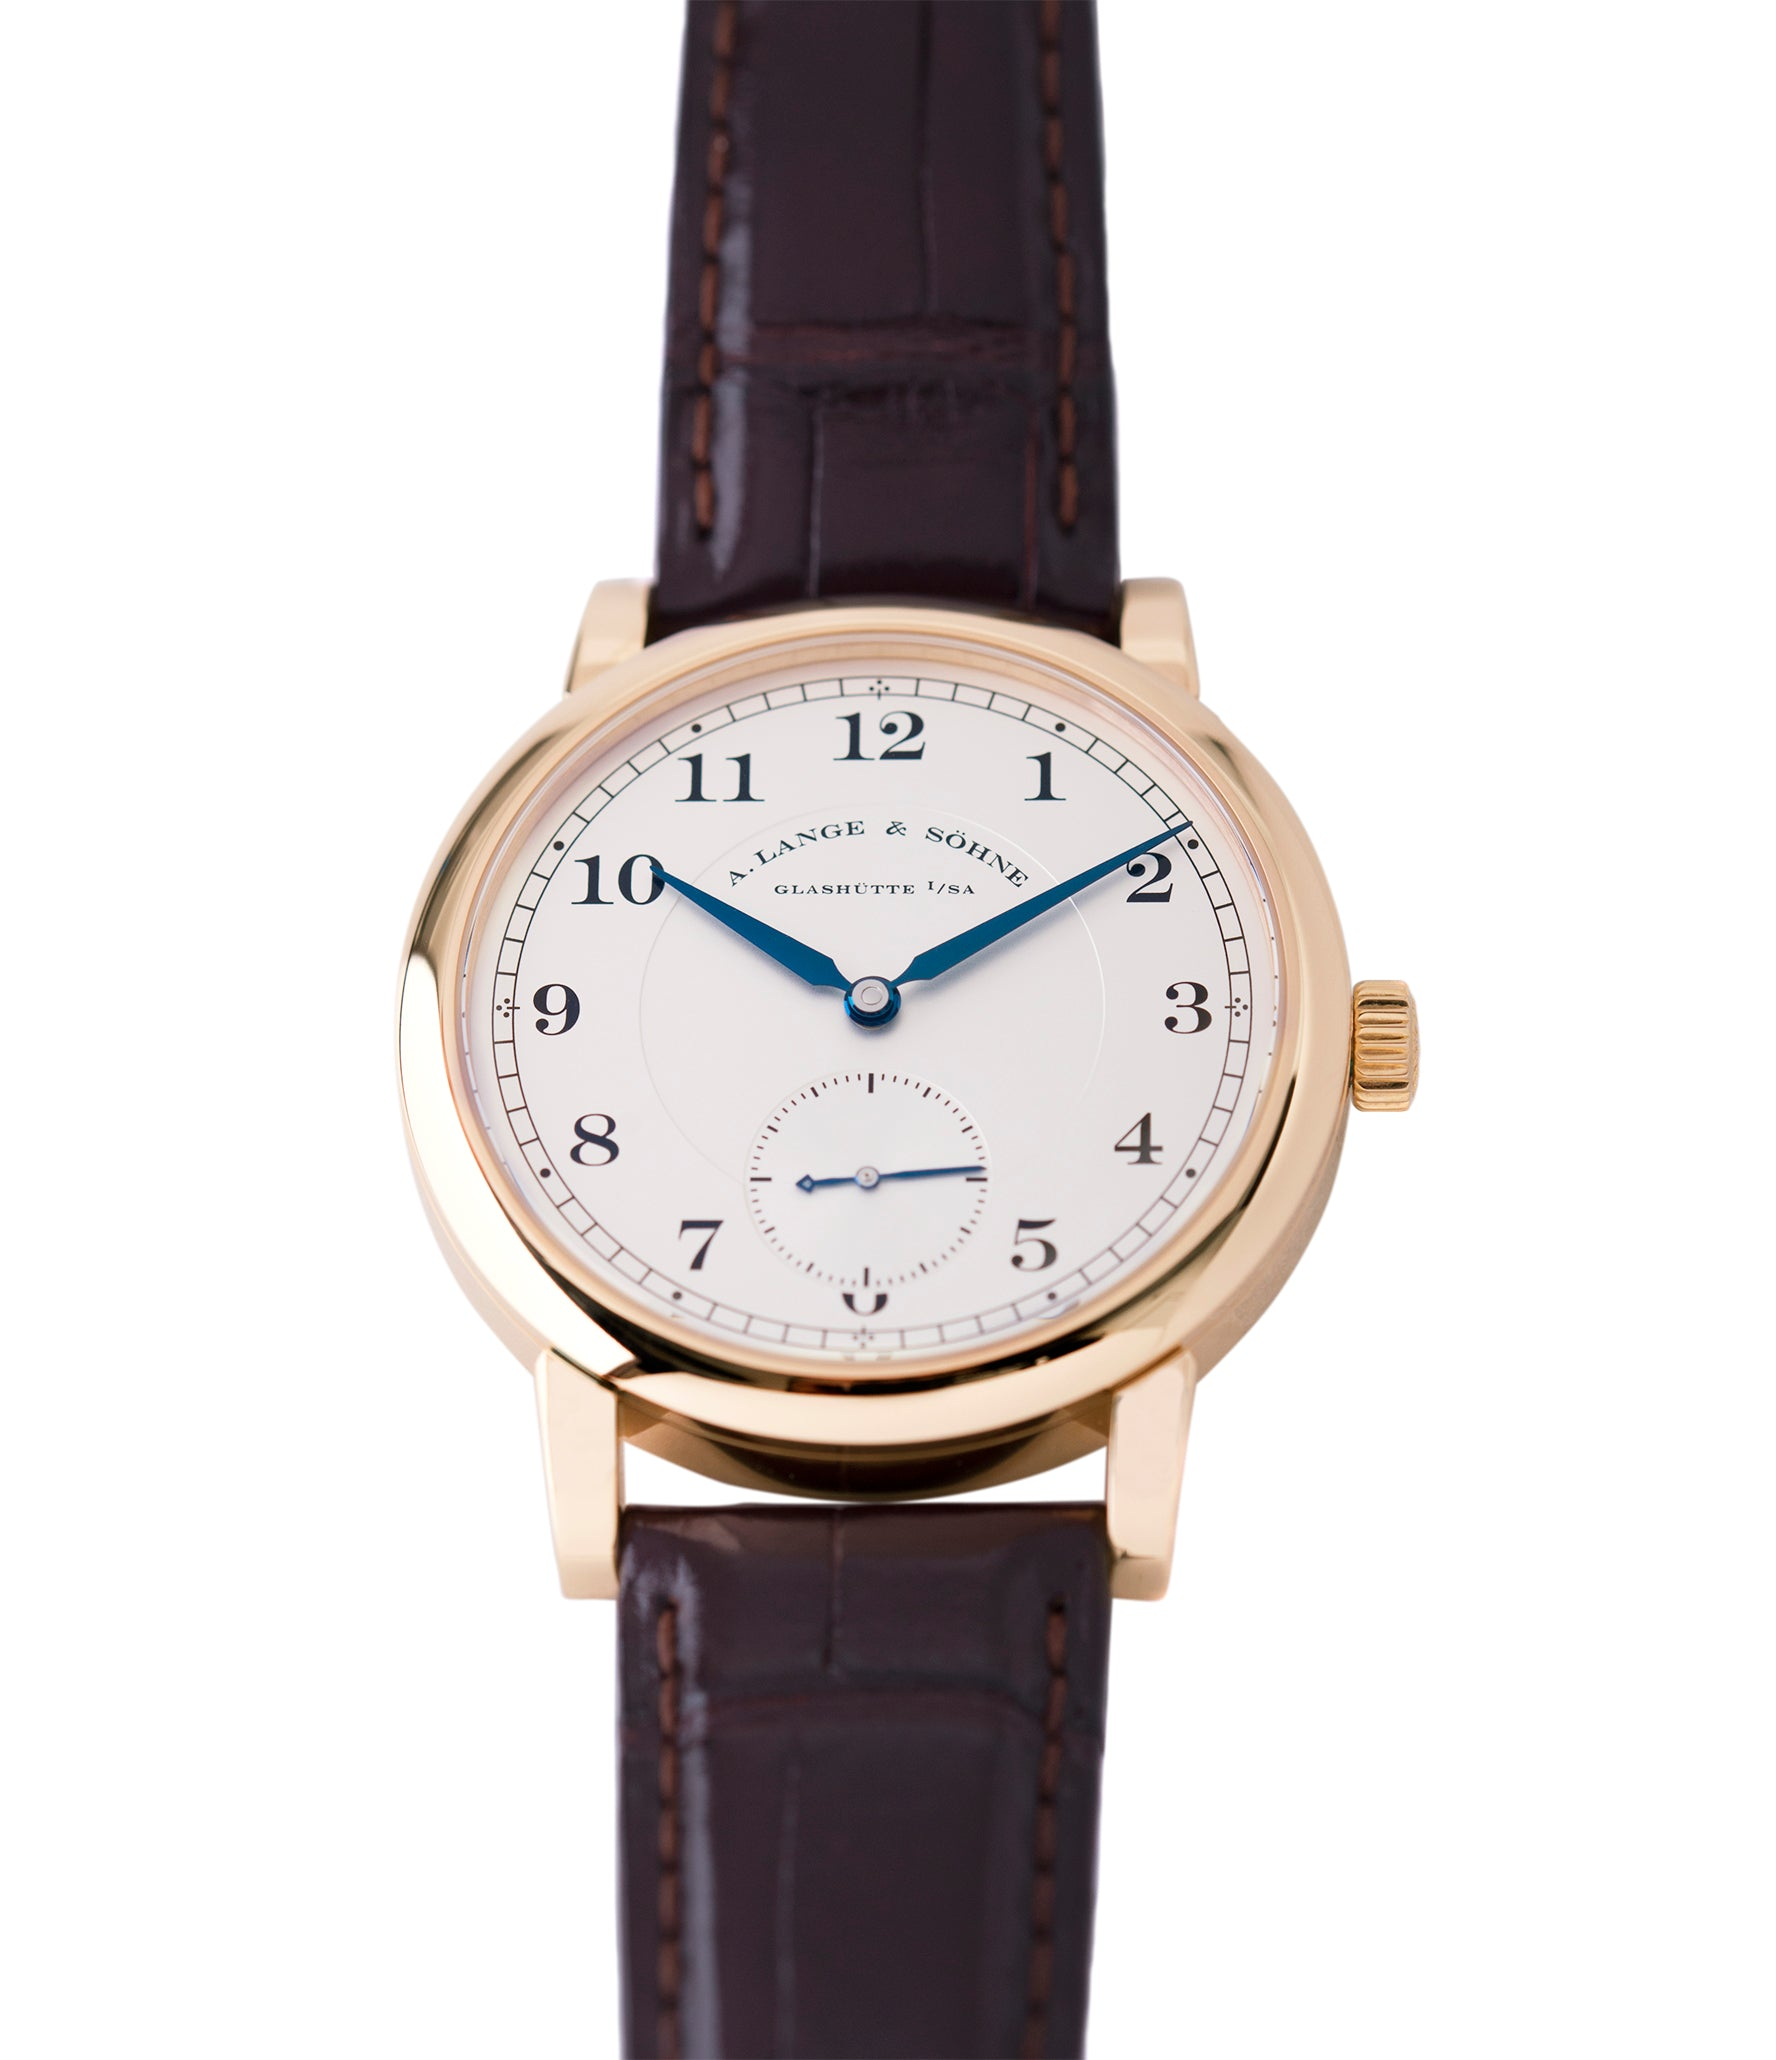 1815 A. Lange & Sohne ref. 233.032 rose gold dress watch for sale online at A Collected Man London Uk specialist of preowned luxury watches